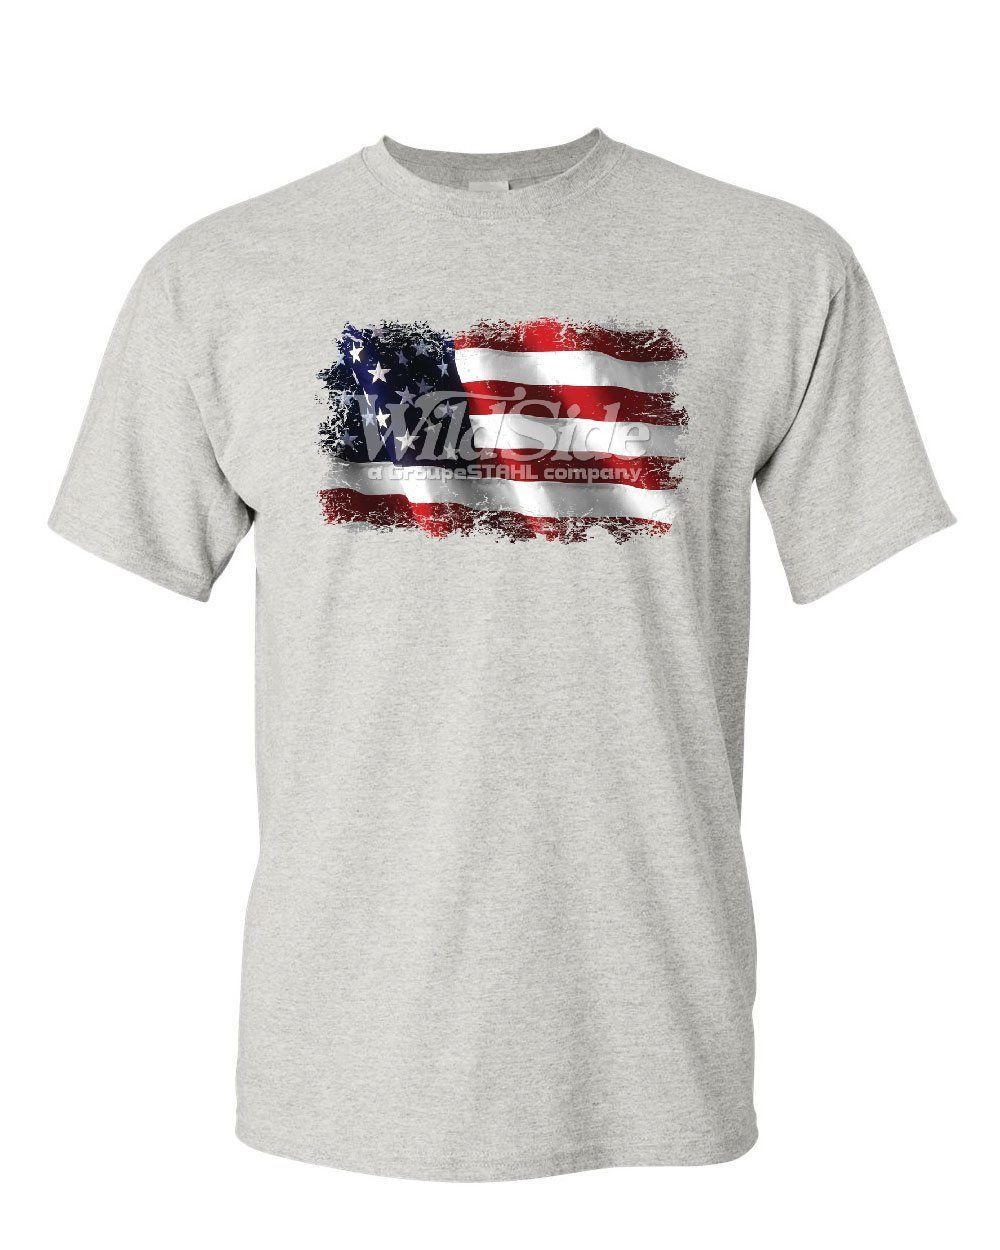 Distressed American Flag T-Shirt Land of the Free 4th of July Mens Tee Shirt